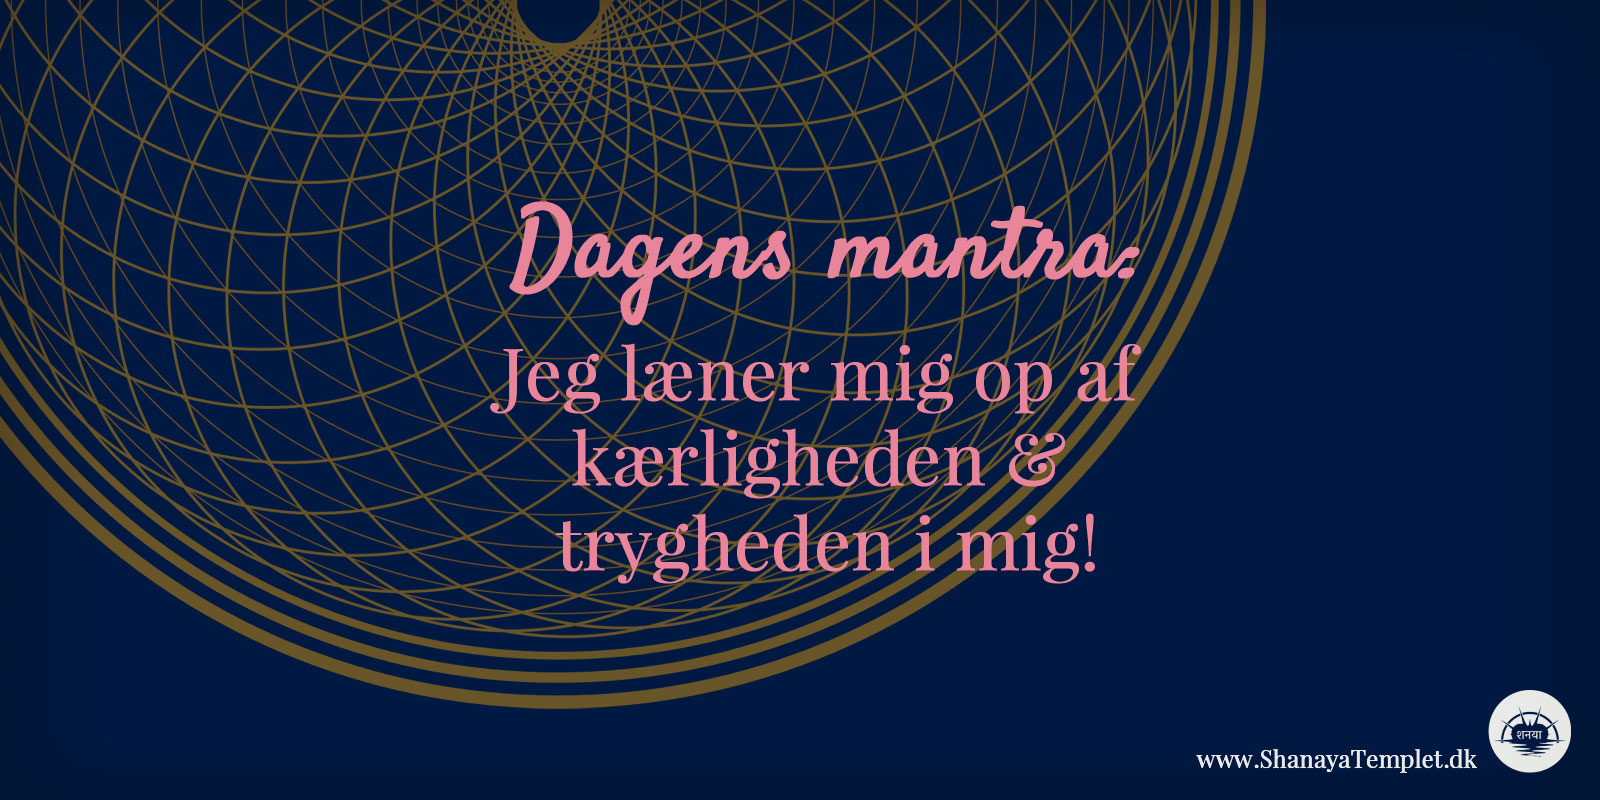 Dagens energi og mantra 10. august 2020